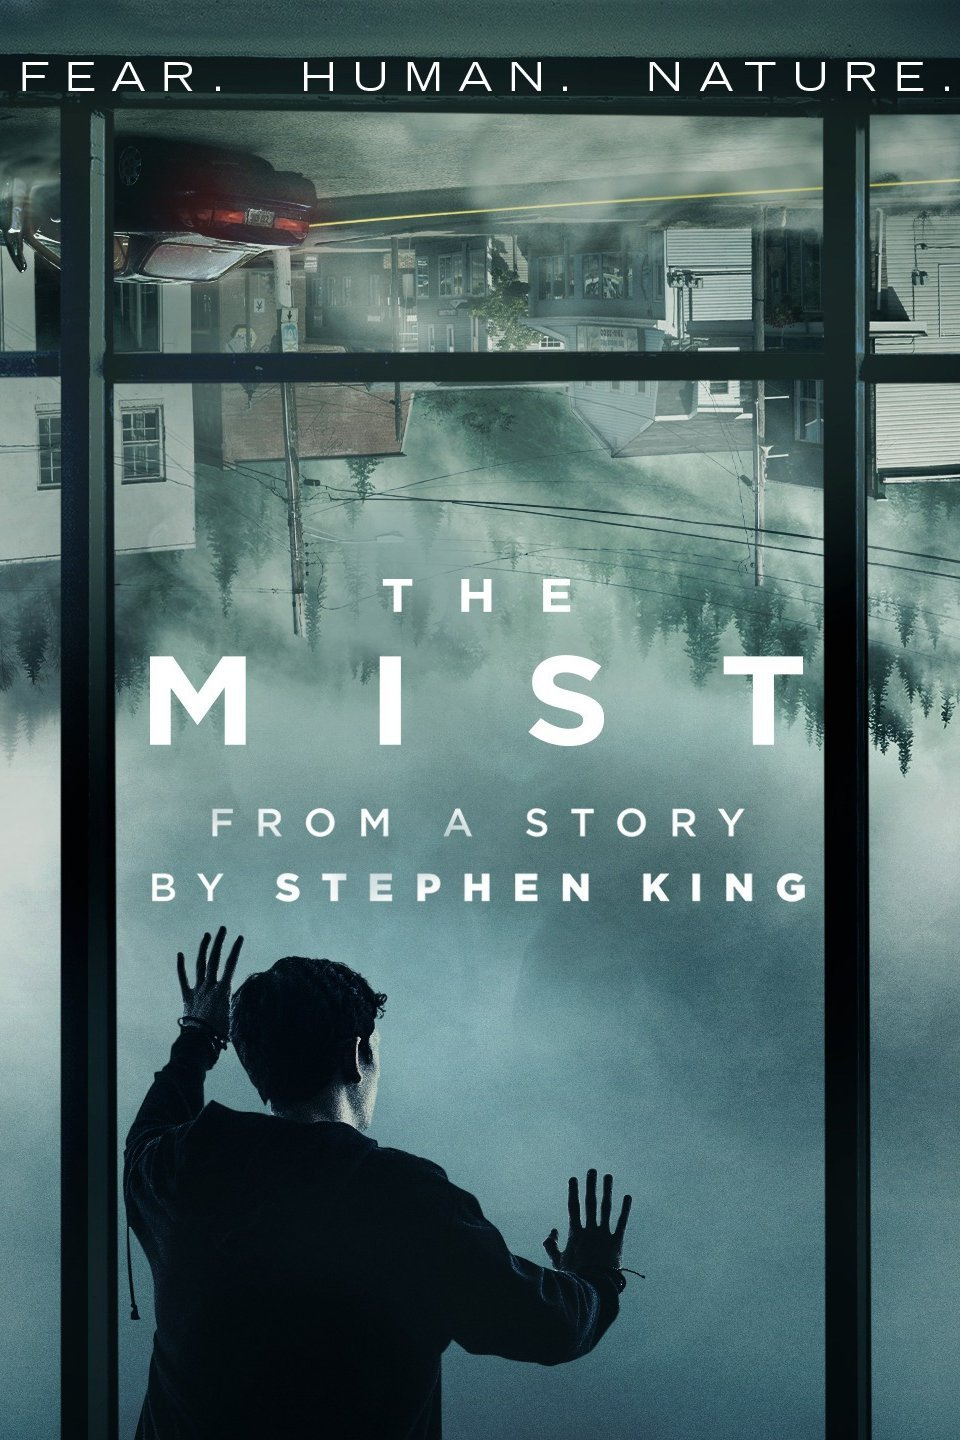 The Mist Season 1 Episode 3 Download HDTV 480p & 720p